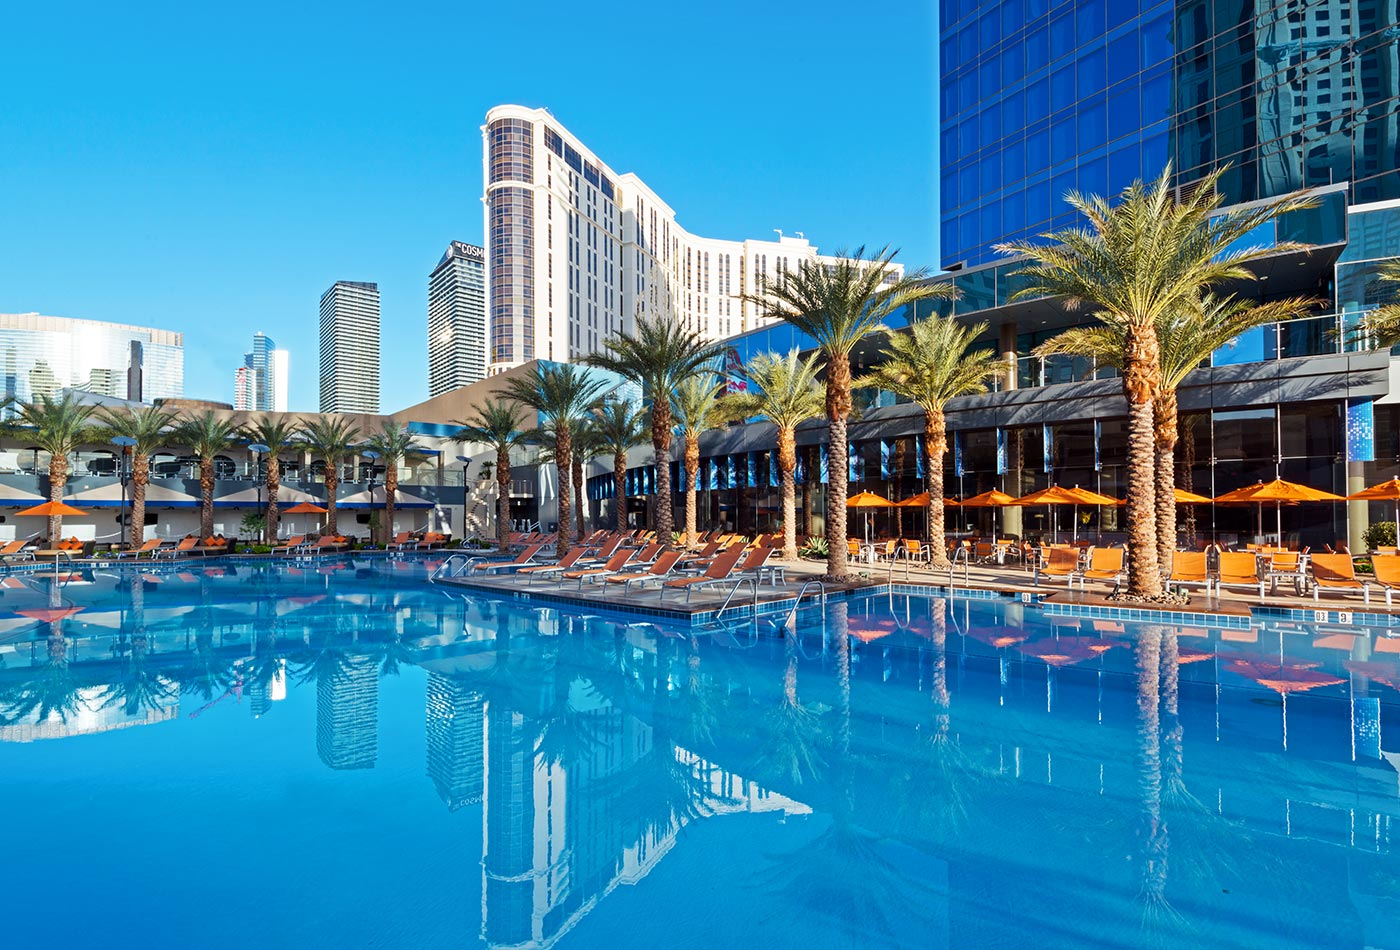 Elara Las Vegas, A Hilton Grand Vacations Club